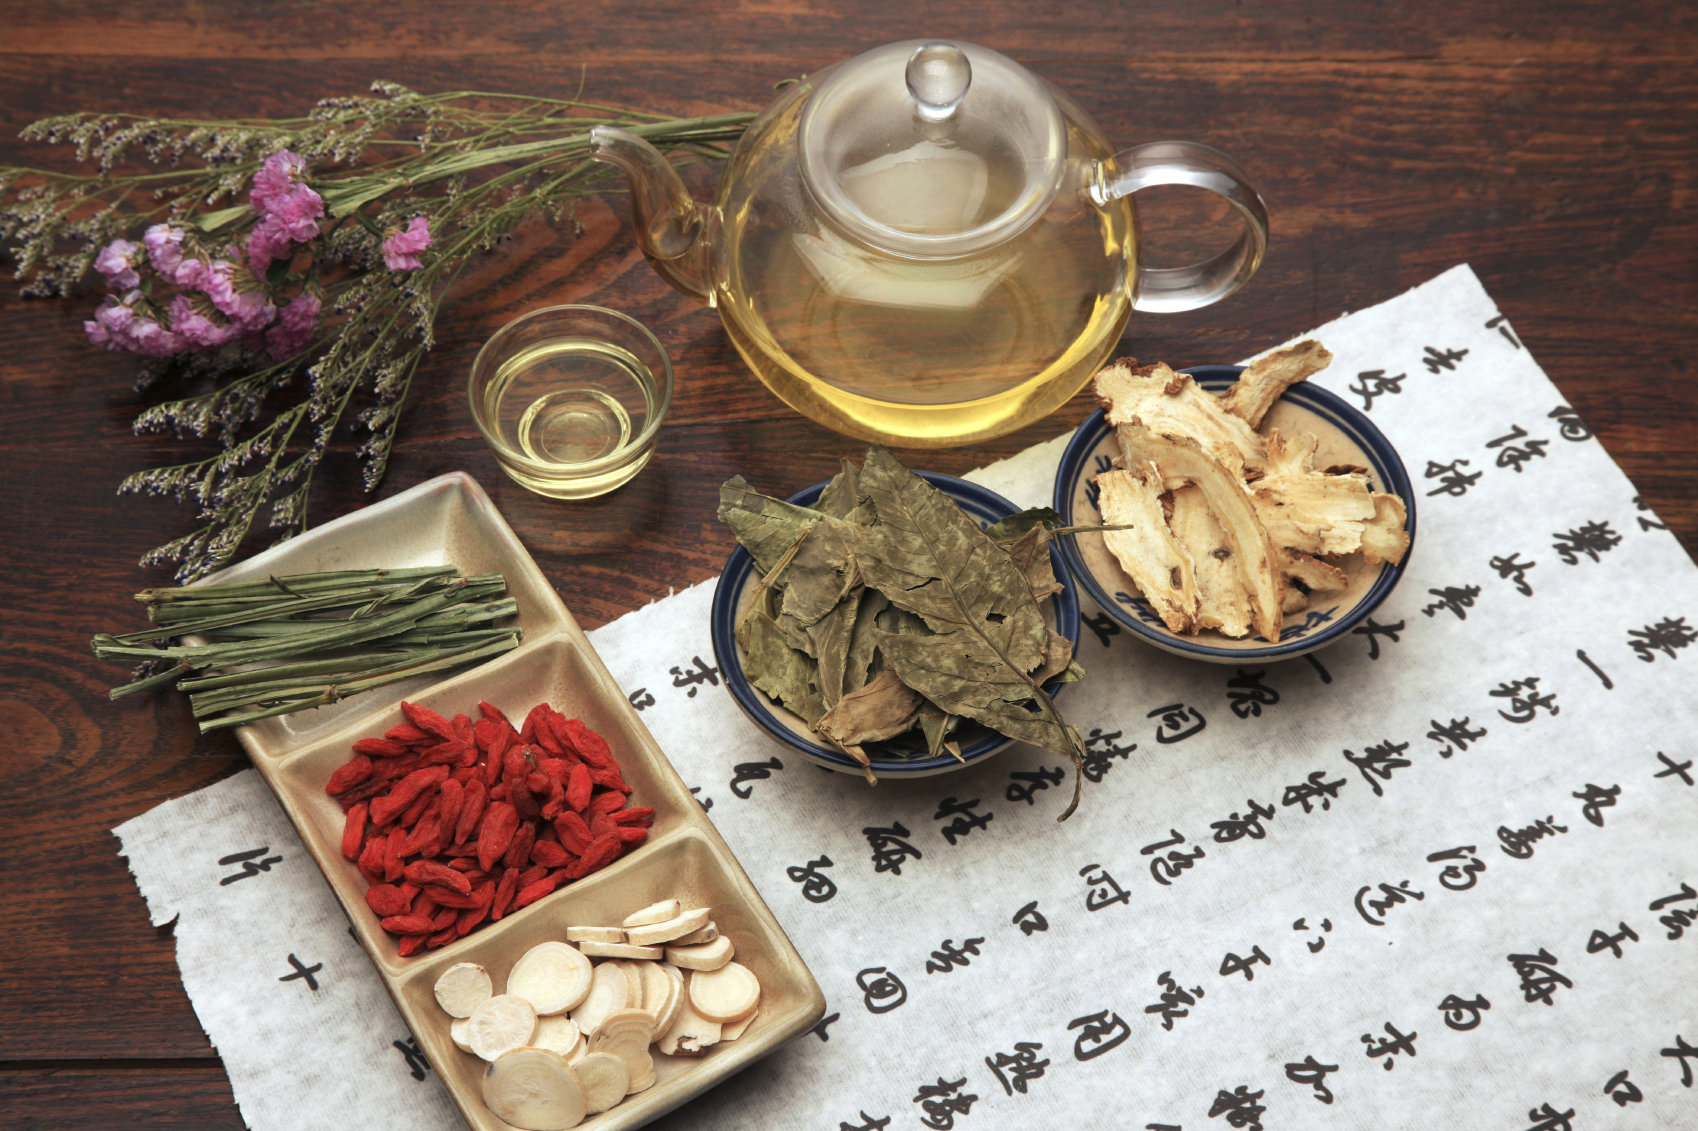 A natural compound from an ancient Chinese herb may lead to better—and safer—weight loss than surgery. But the FDA doesn't want you touching it.